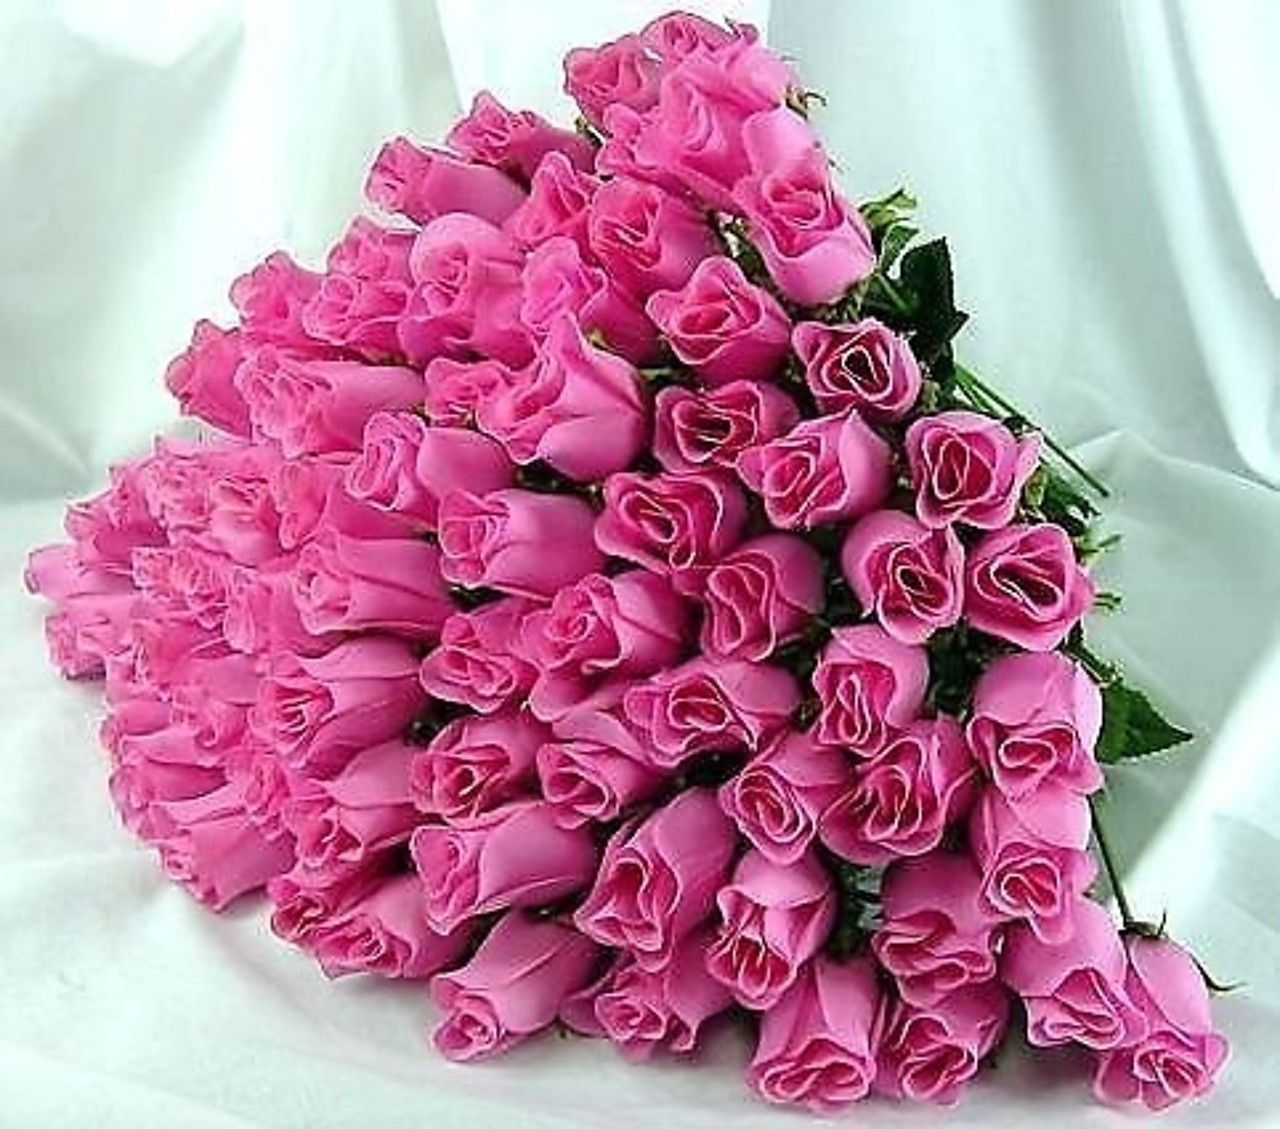 22 Awesome Big Rose Bouquets Roses Pinterest Rose Bouquet